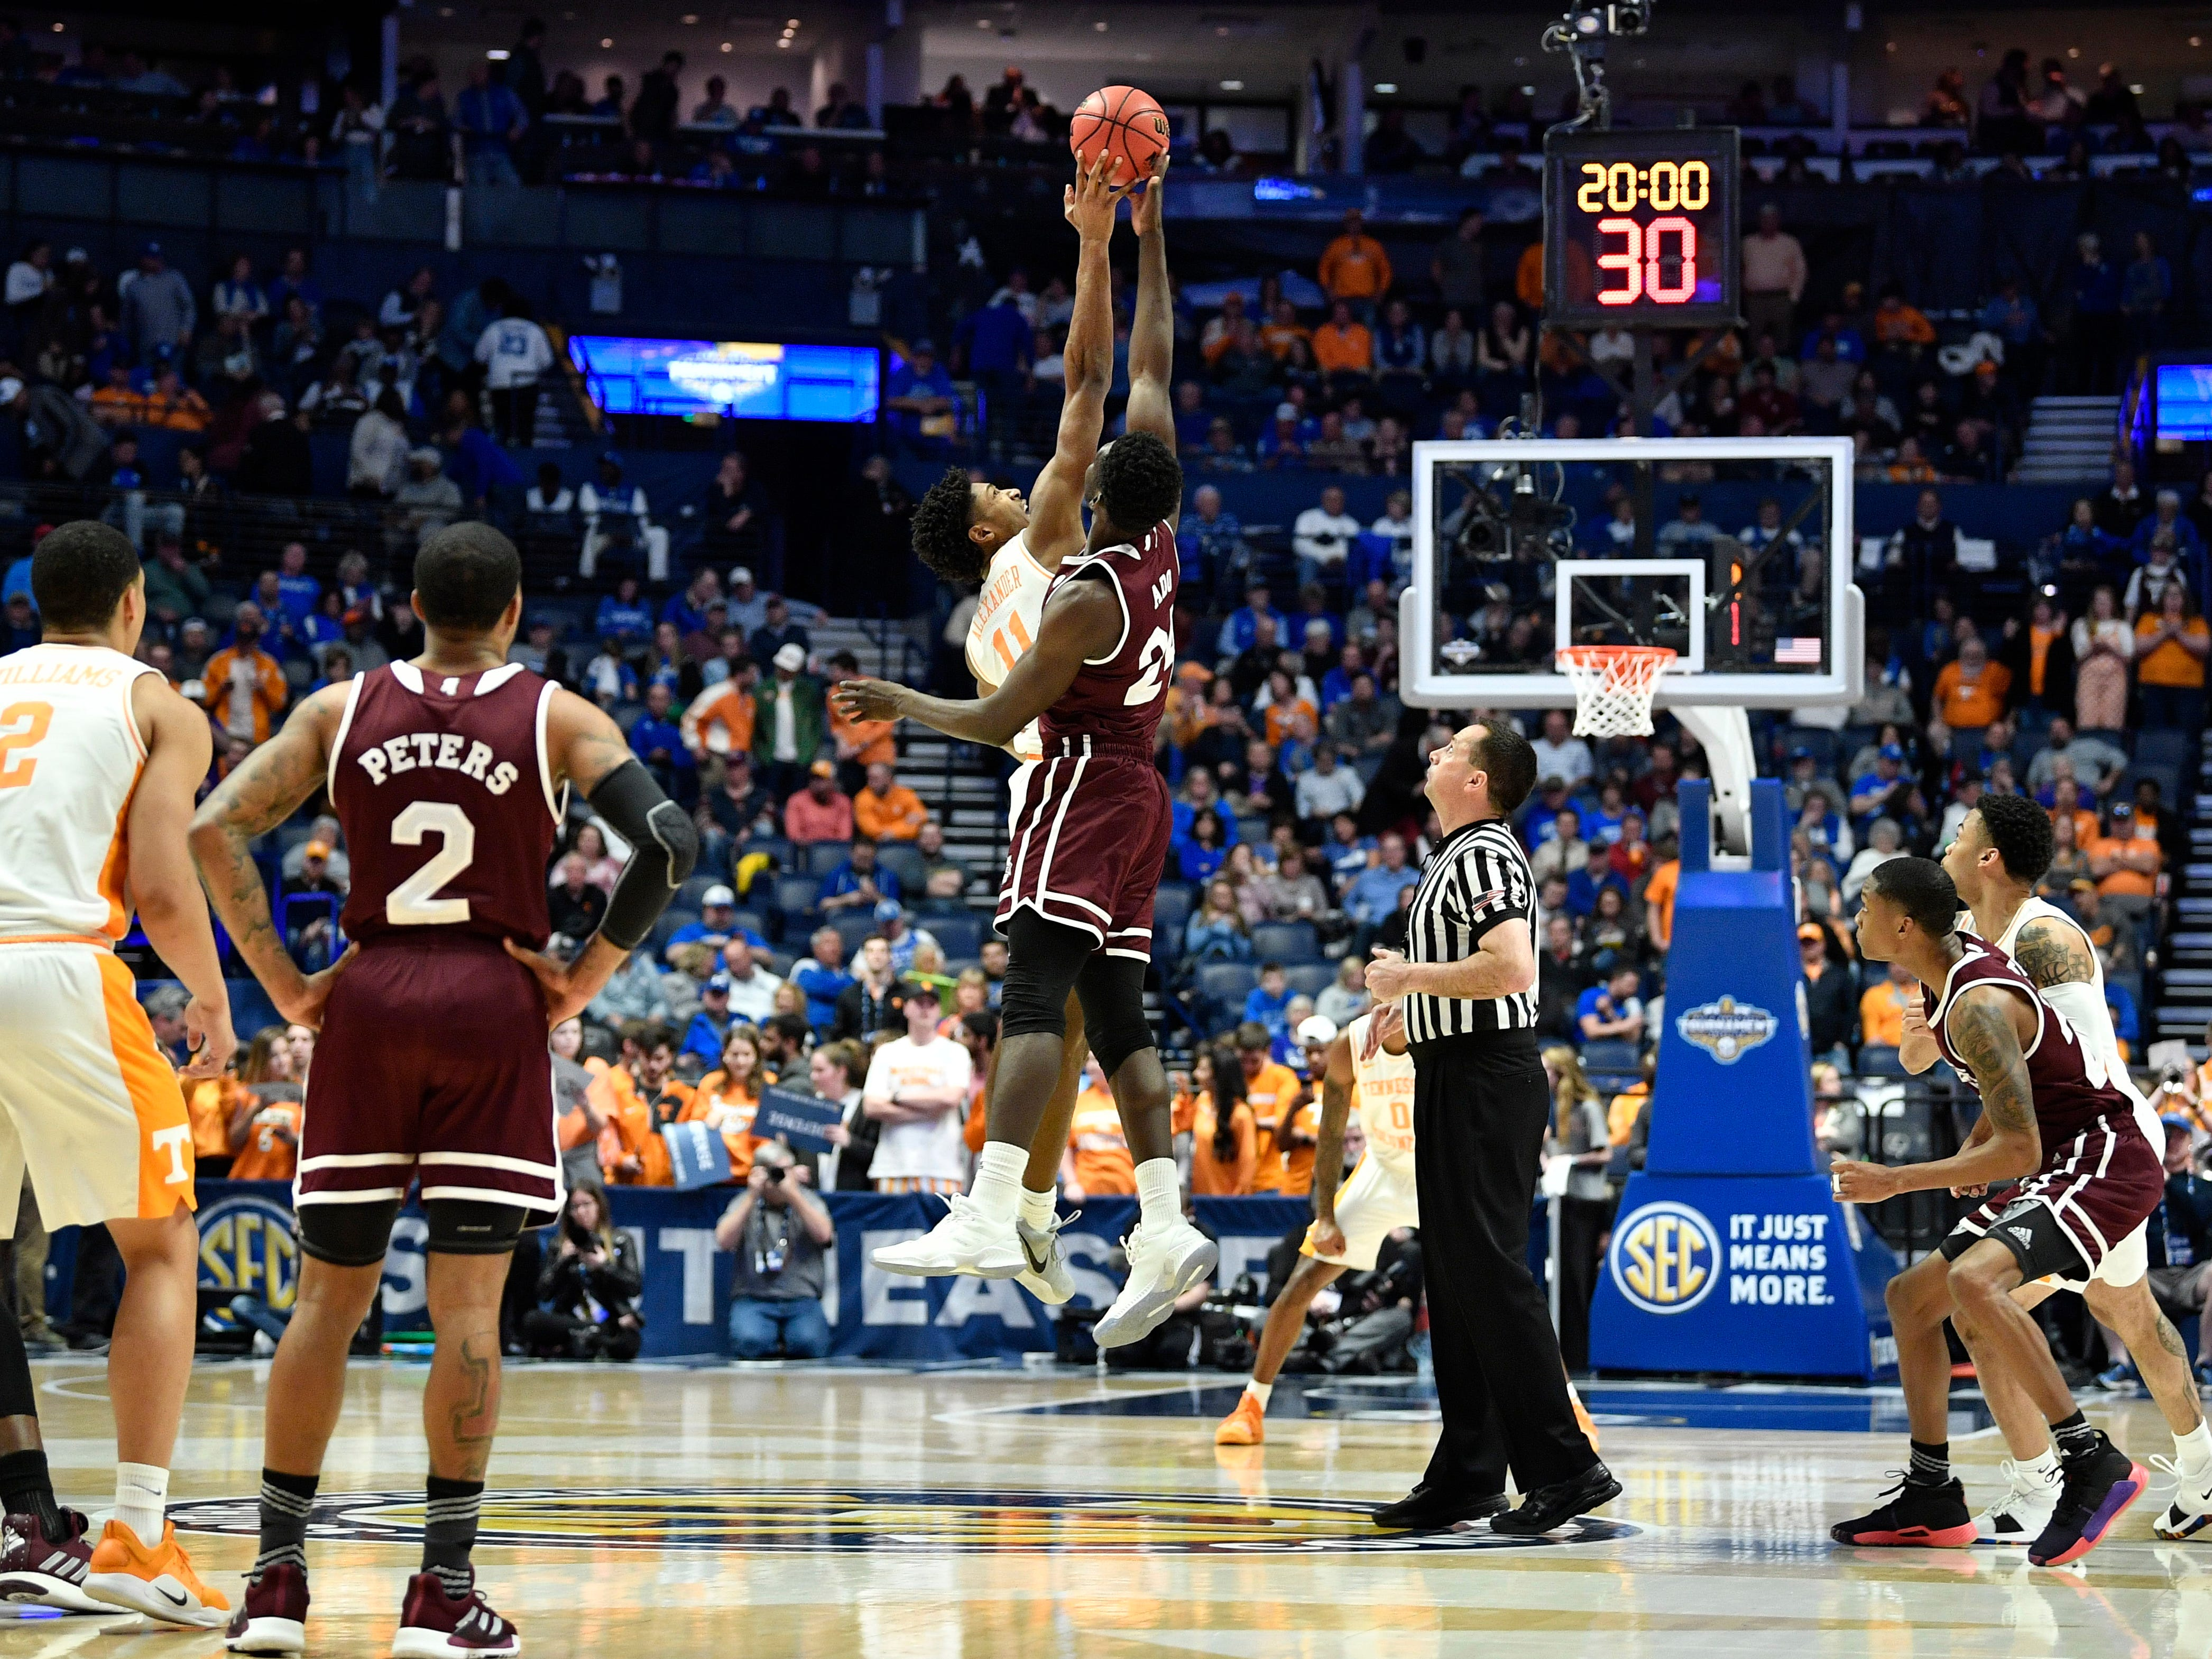 Tennessee forward Kyle Alexander (11) and Mississippi State forward Abdul Ado (24) go up for the opening tipoff at  their SEC Men's Basketball Tournament game at Bridgestone Arena in Nashville, Tenn., Friday, March 15, 2019.